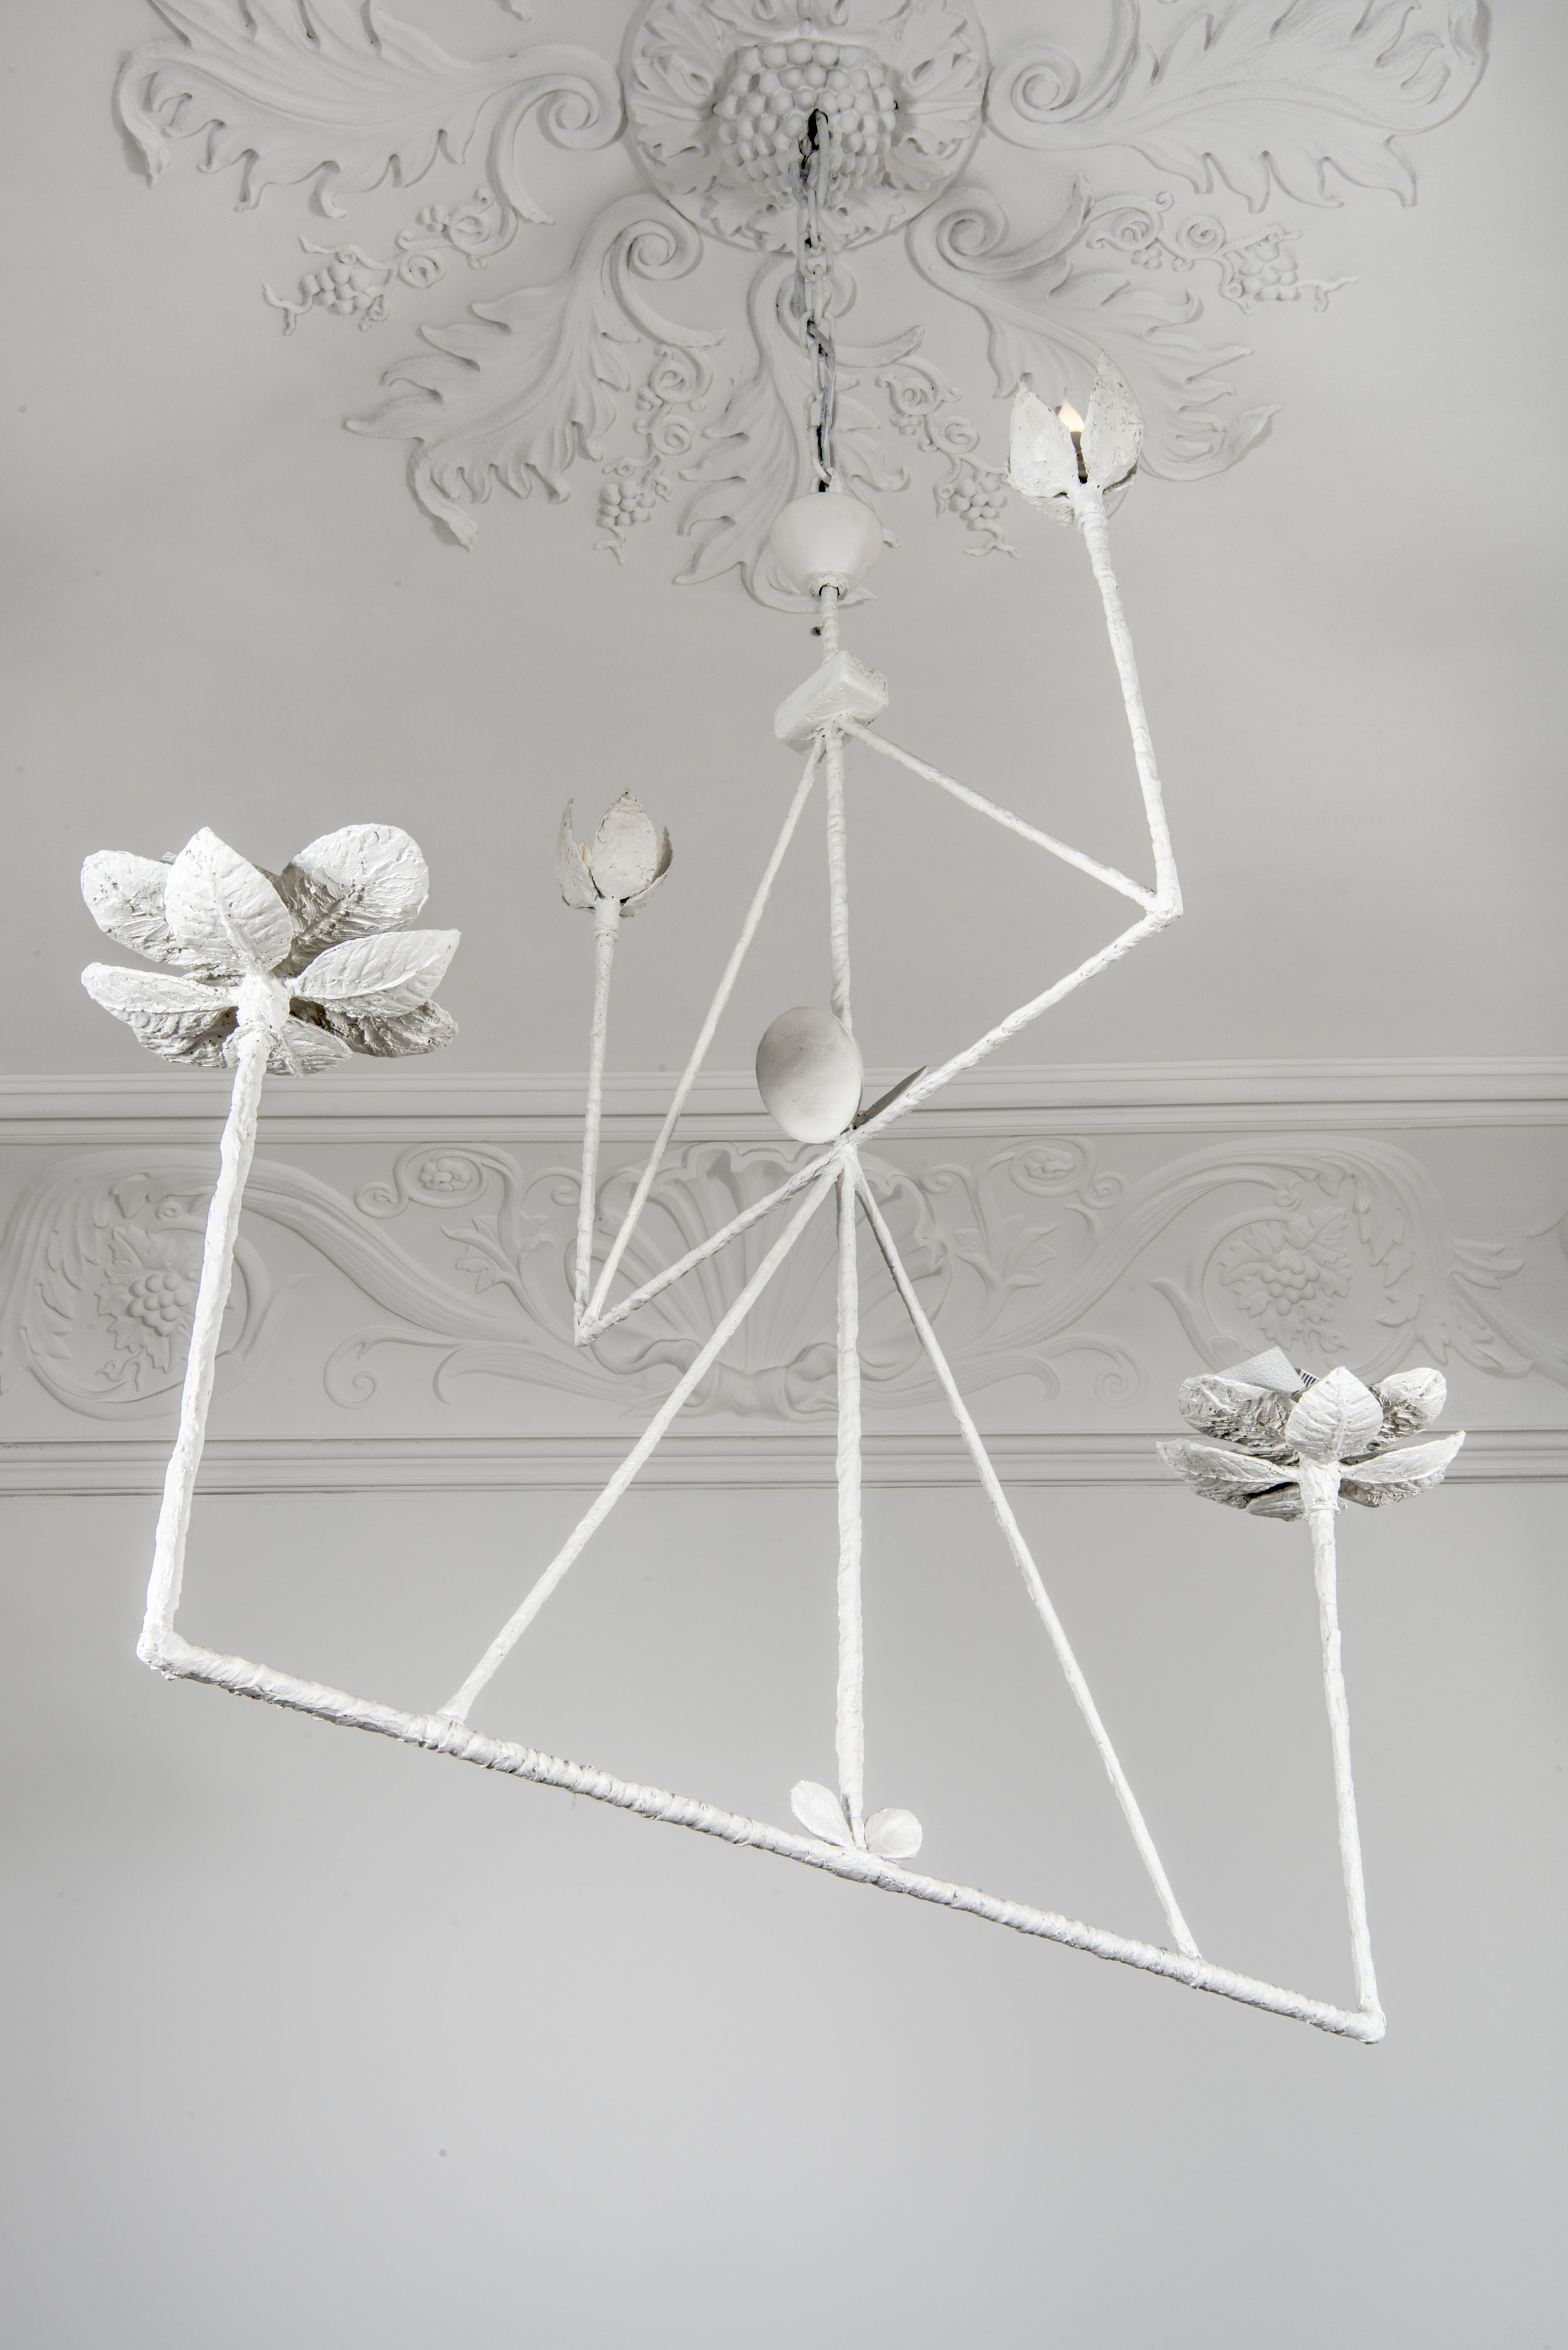 Diego Giacometti (1902-1985)  Chandelier with four branches [1982-1984] executed at Robert Haligon Studio, Périgny-sur-Yerres, on display at Musée national Picasso-Paris; white resin, 135 x 140 x 100 cm ©Philippe Fuzeau/ Musée national Picasso-Paris